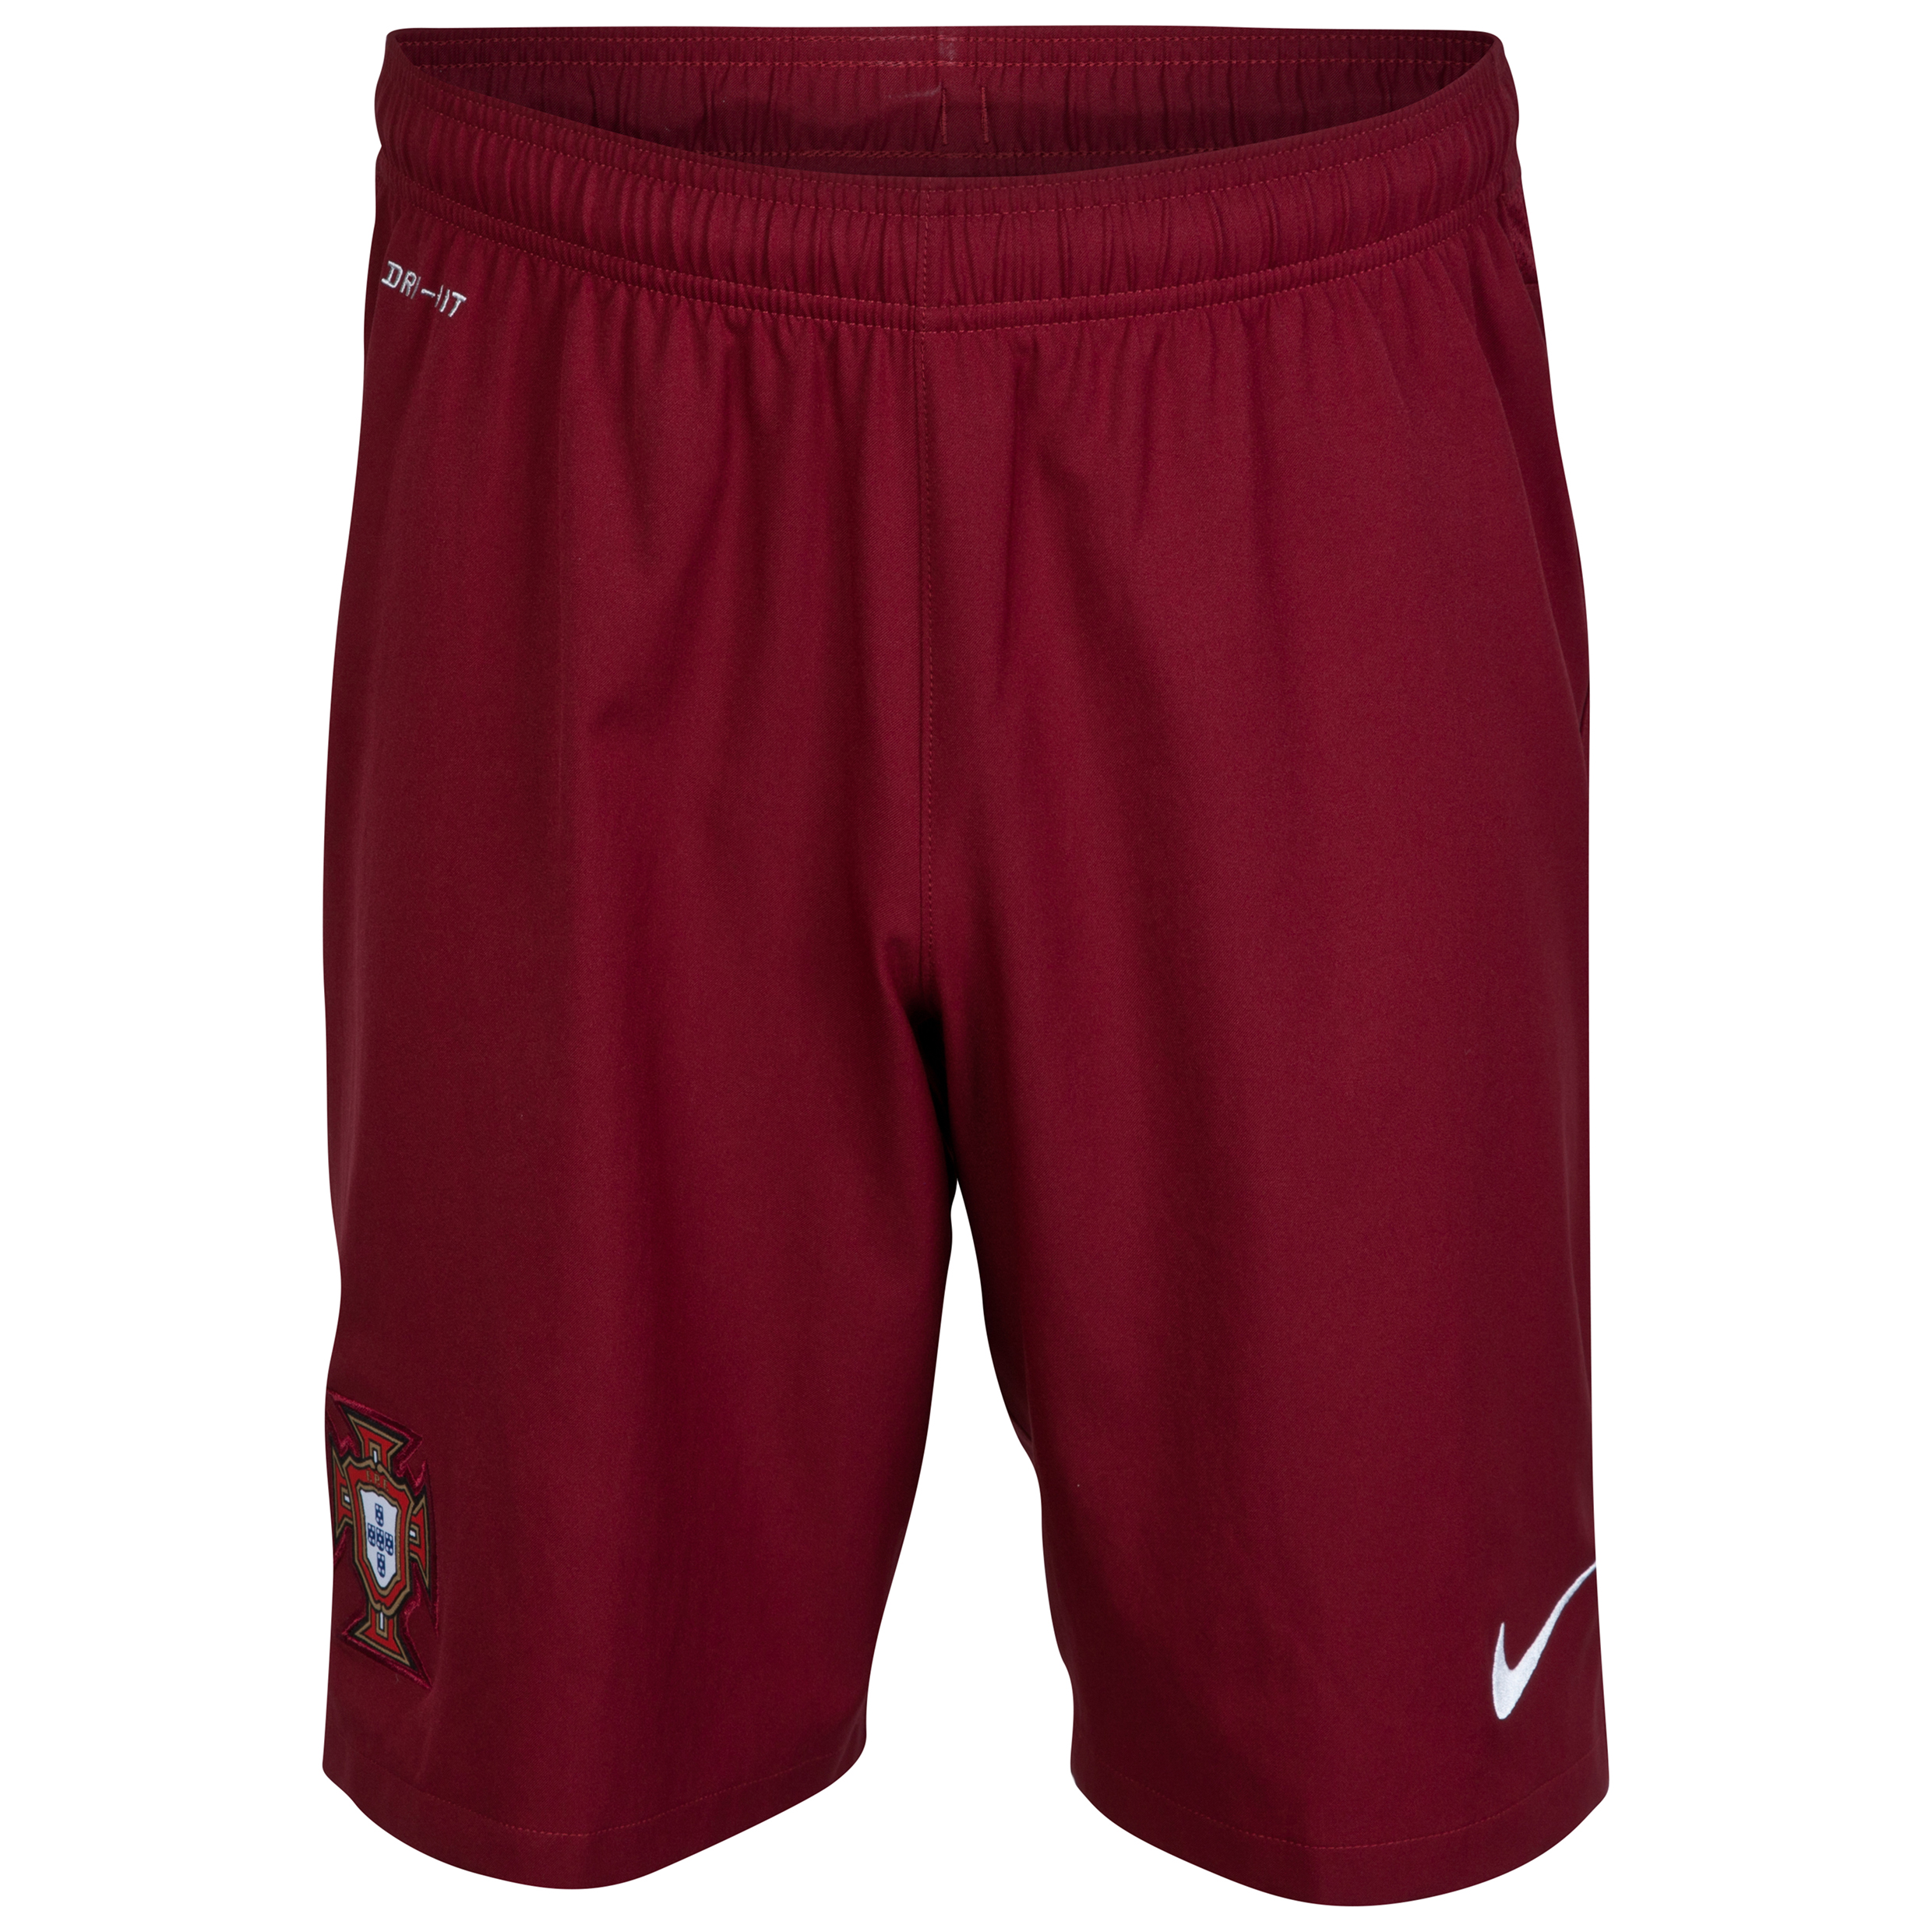 Portugal Home Shorts 2014/15 Red